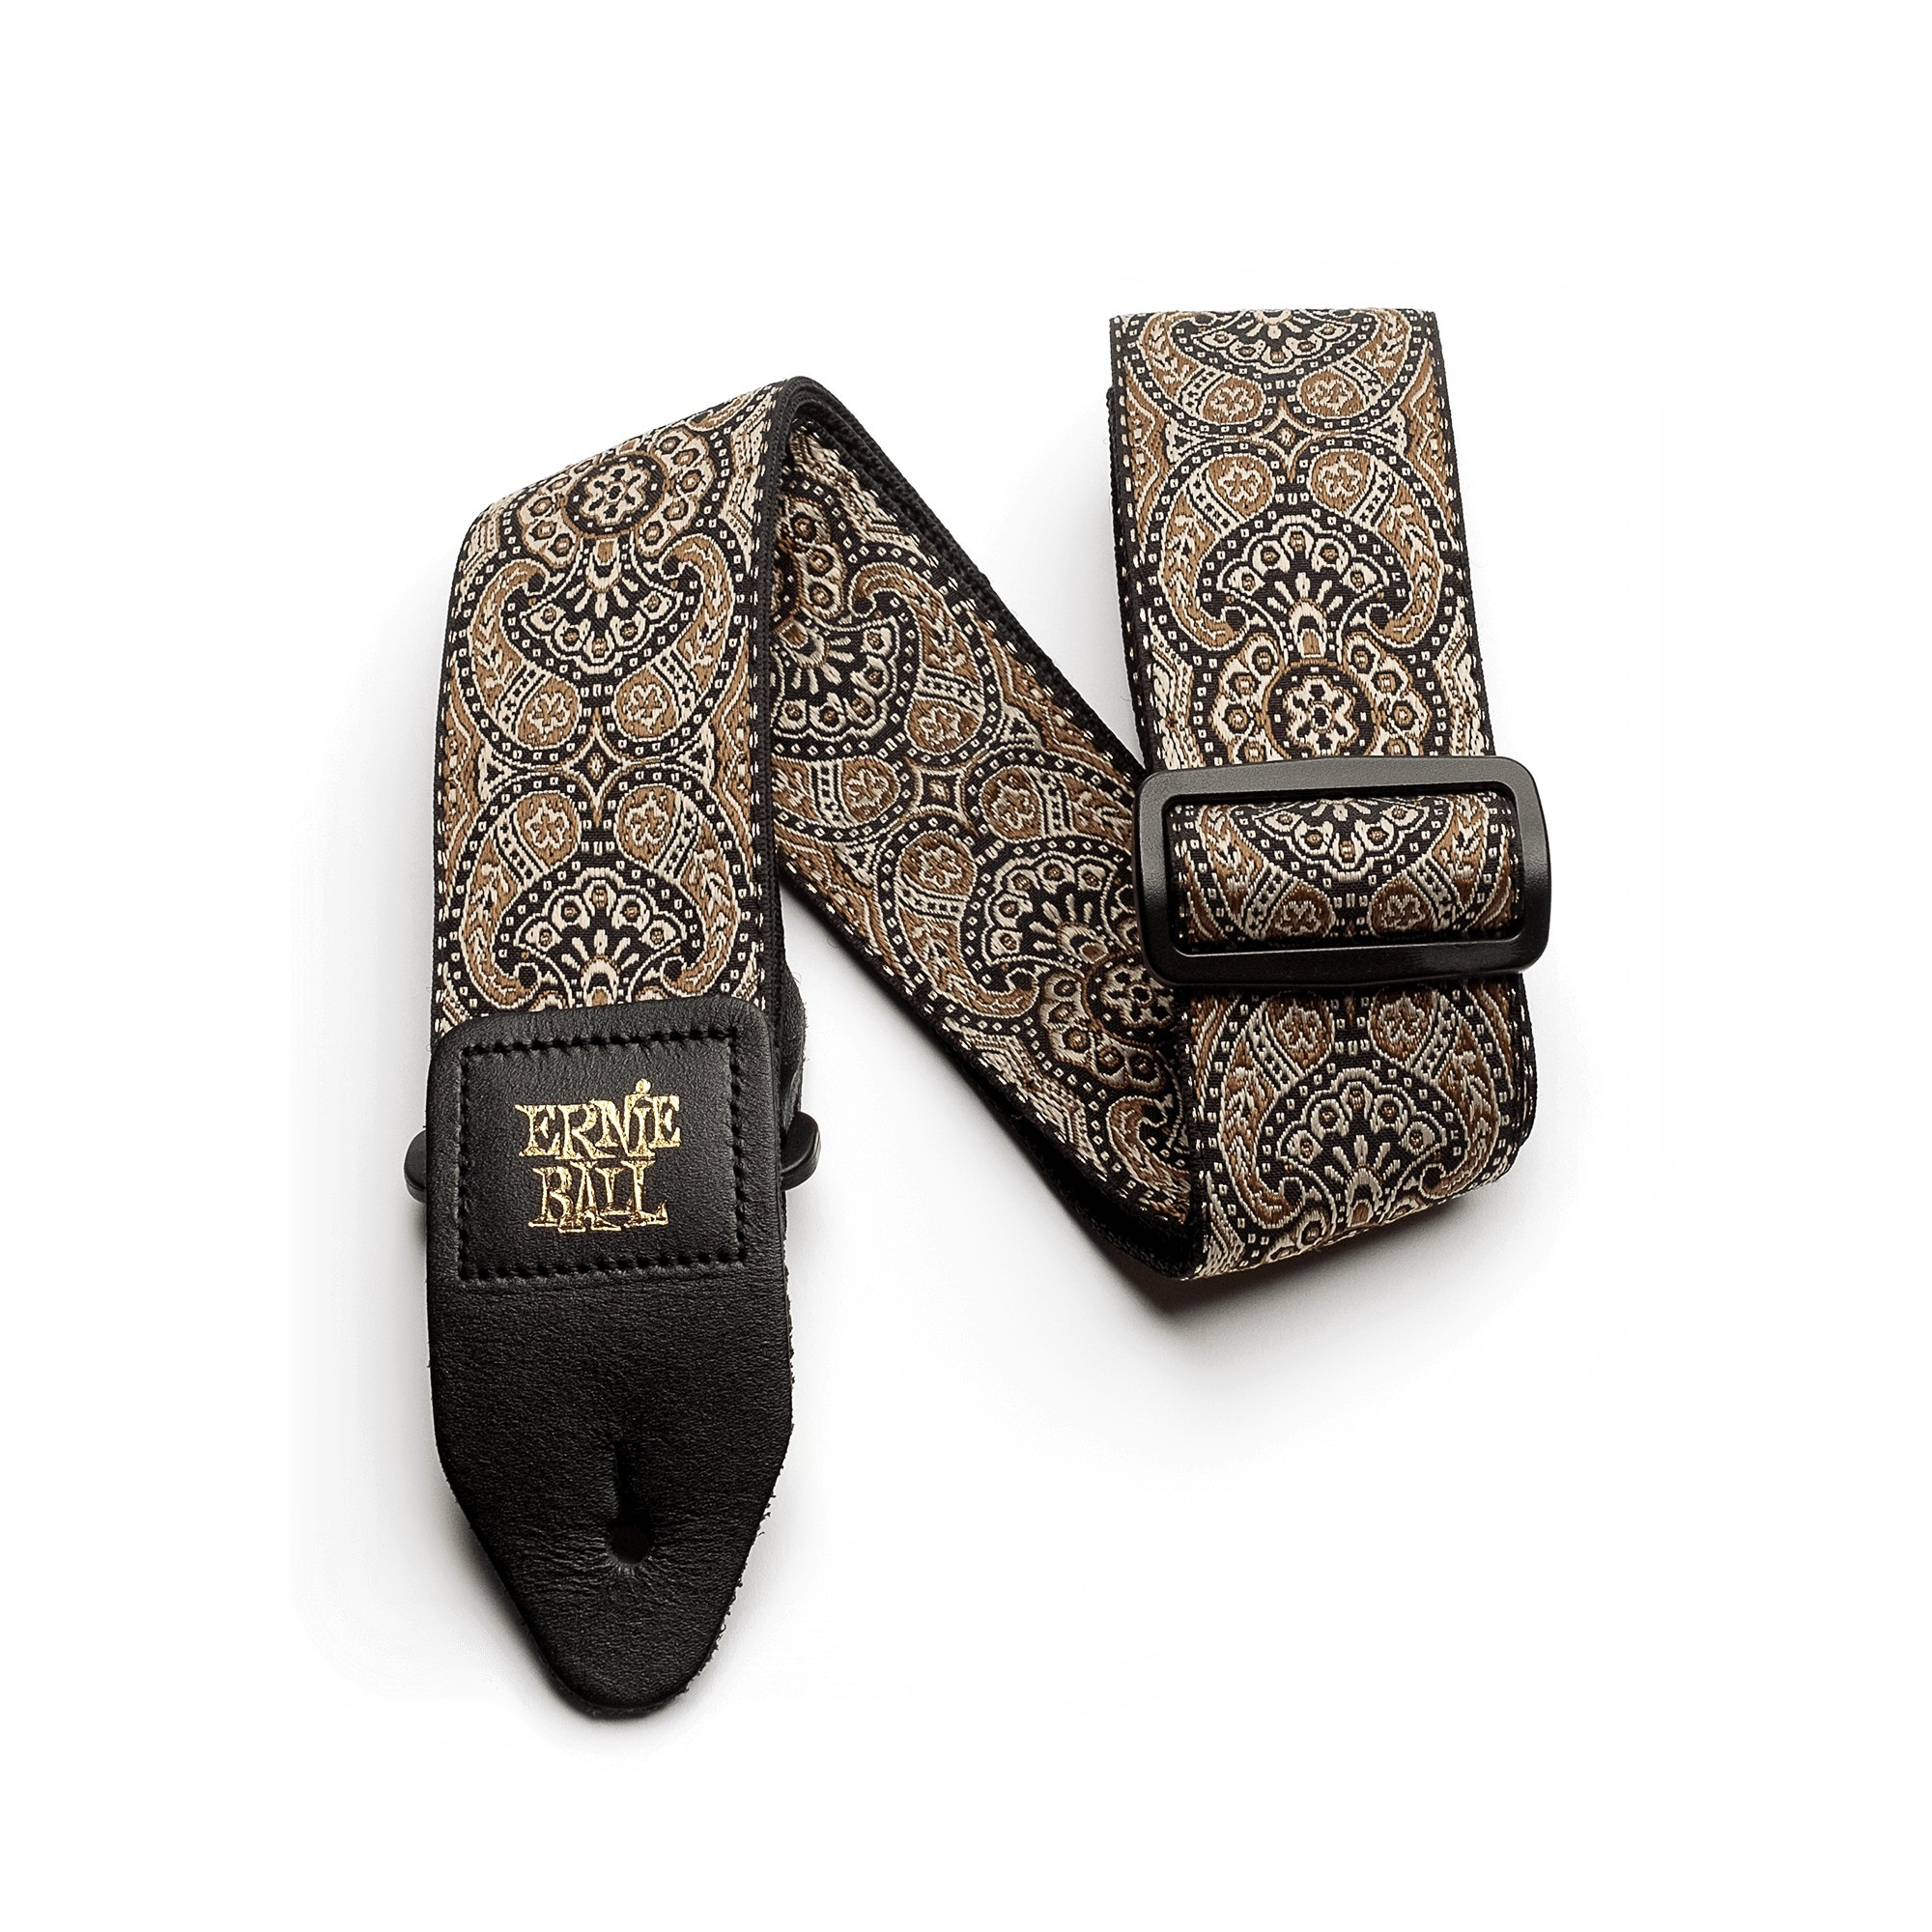 ERNIE BALL Sangle Jacquard Gold And Black Paisley